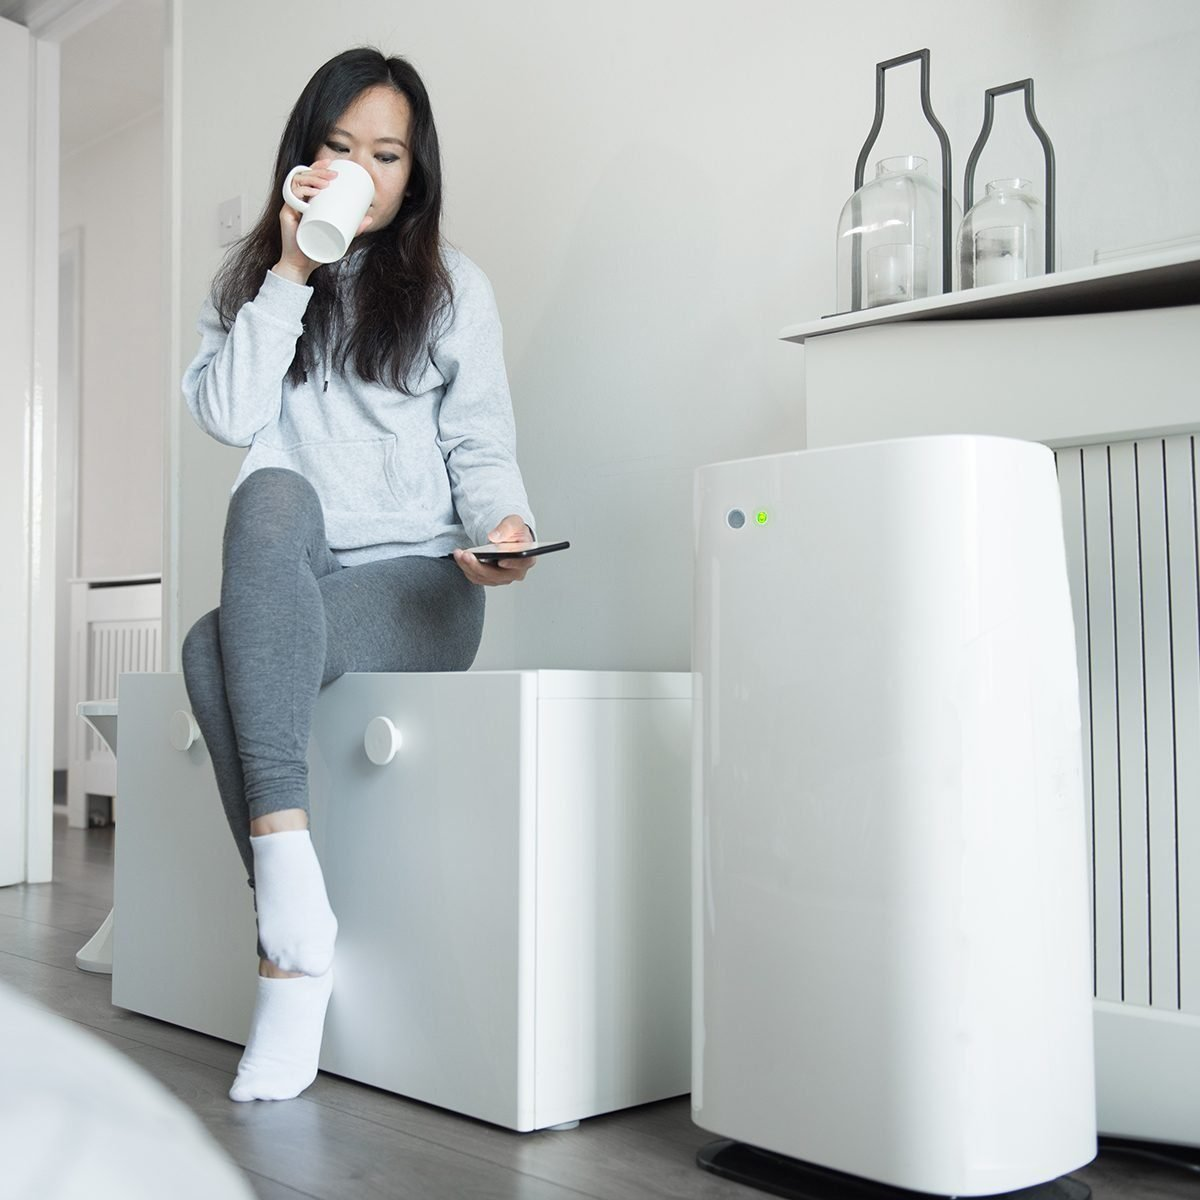 A Young Asian Woman Controls The Power Of Her Smart Air Unit From Her Mobile Phone As She Sits On A Storage Bench And Enjoys A Cup Of Tea In The Bedroom